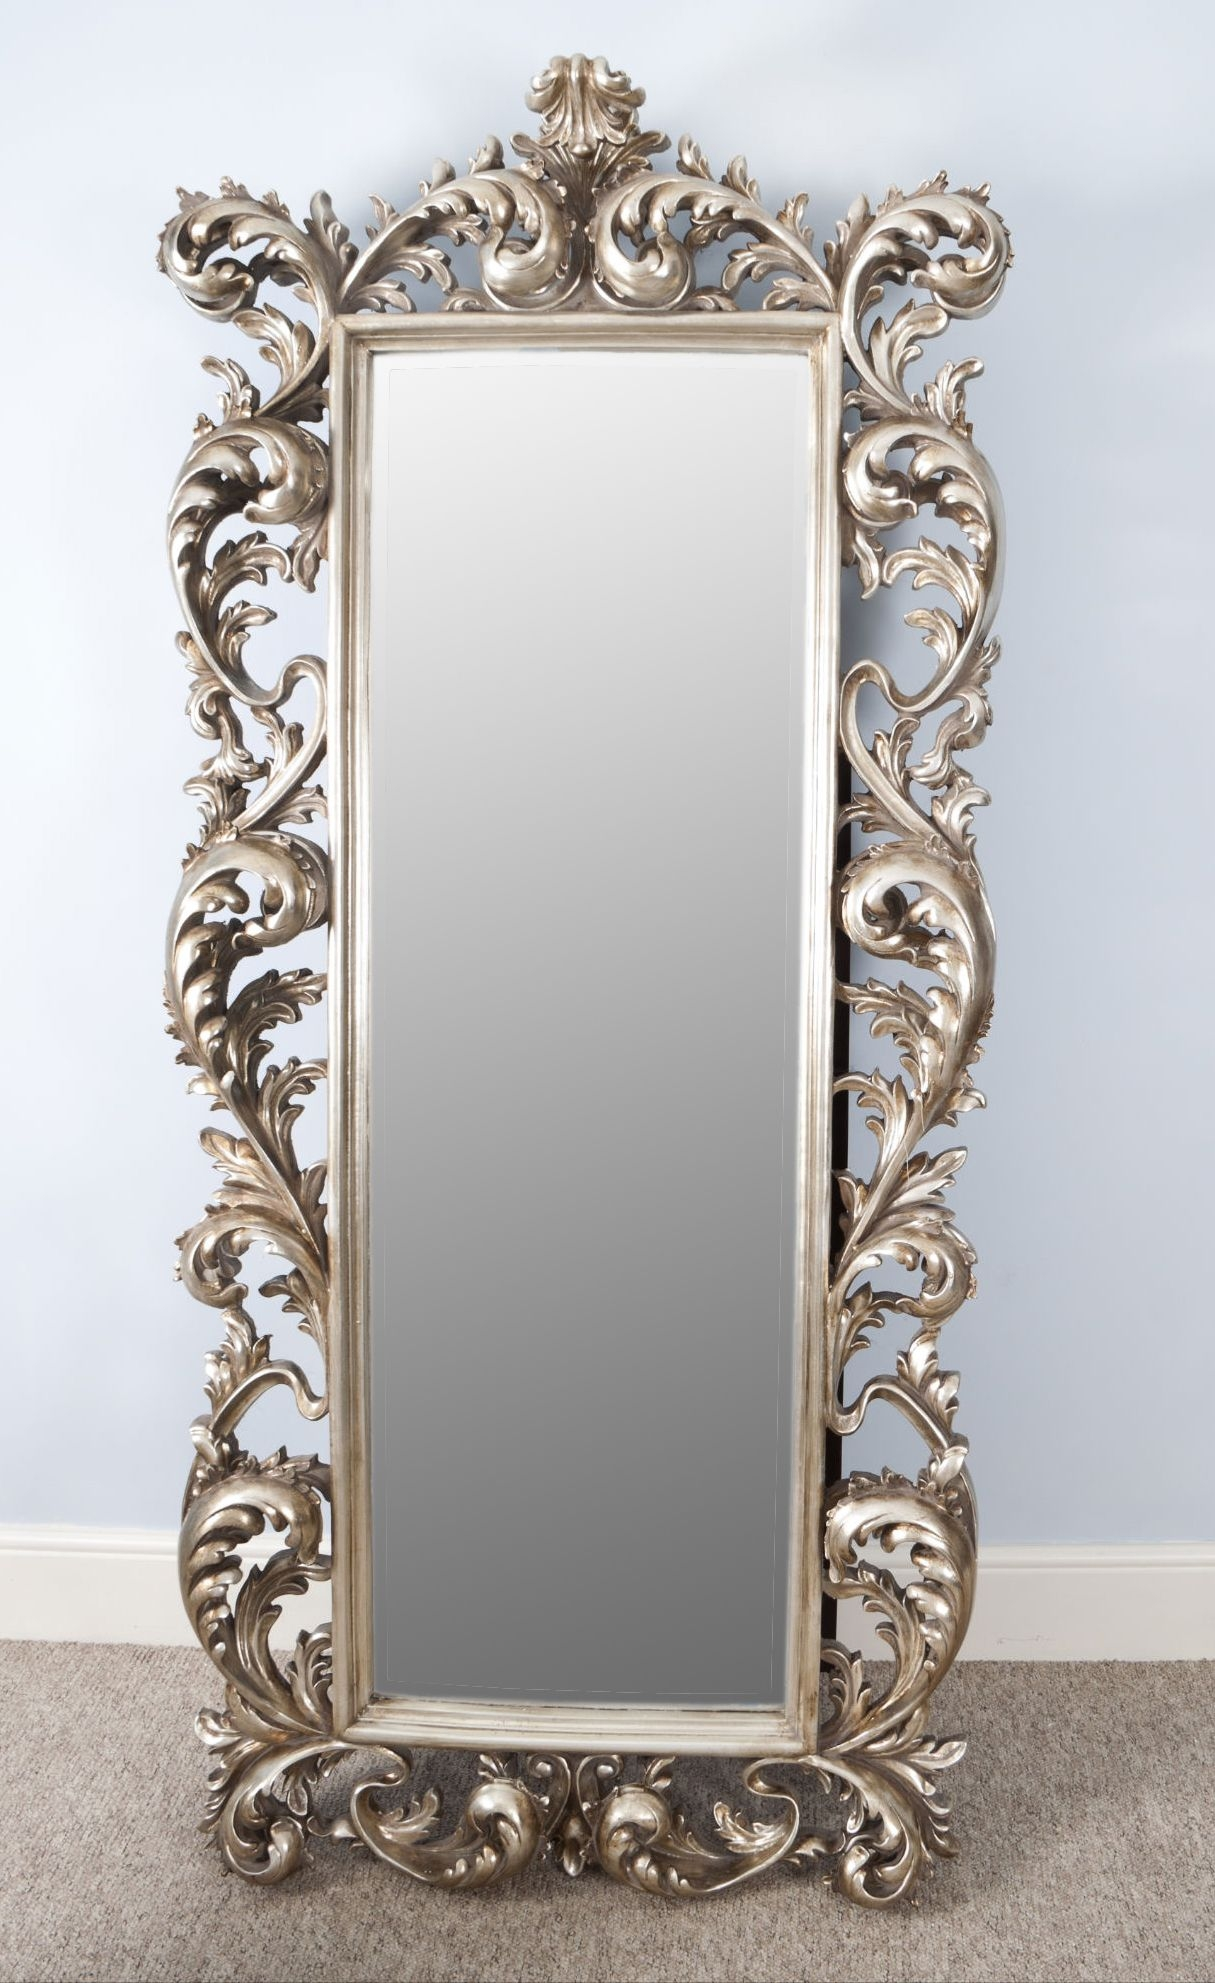 Classic Impression On Antique Wall Mirrors Vwho Intended For Antique Large Mirror (Image 10 of 15)